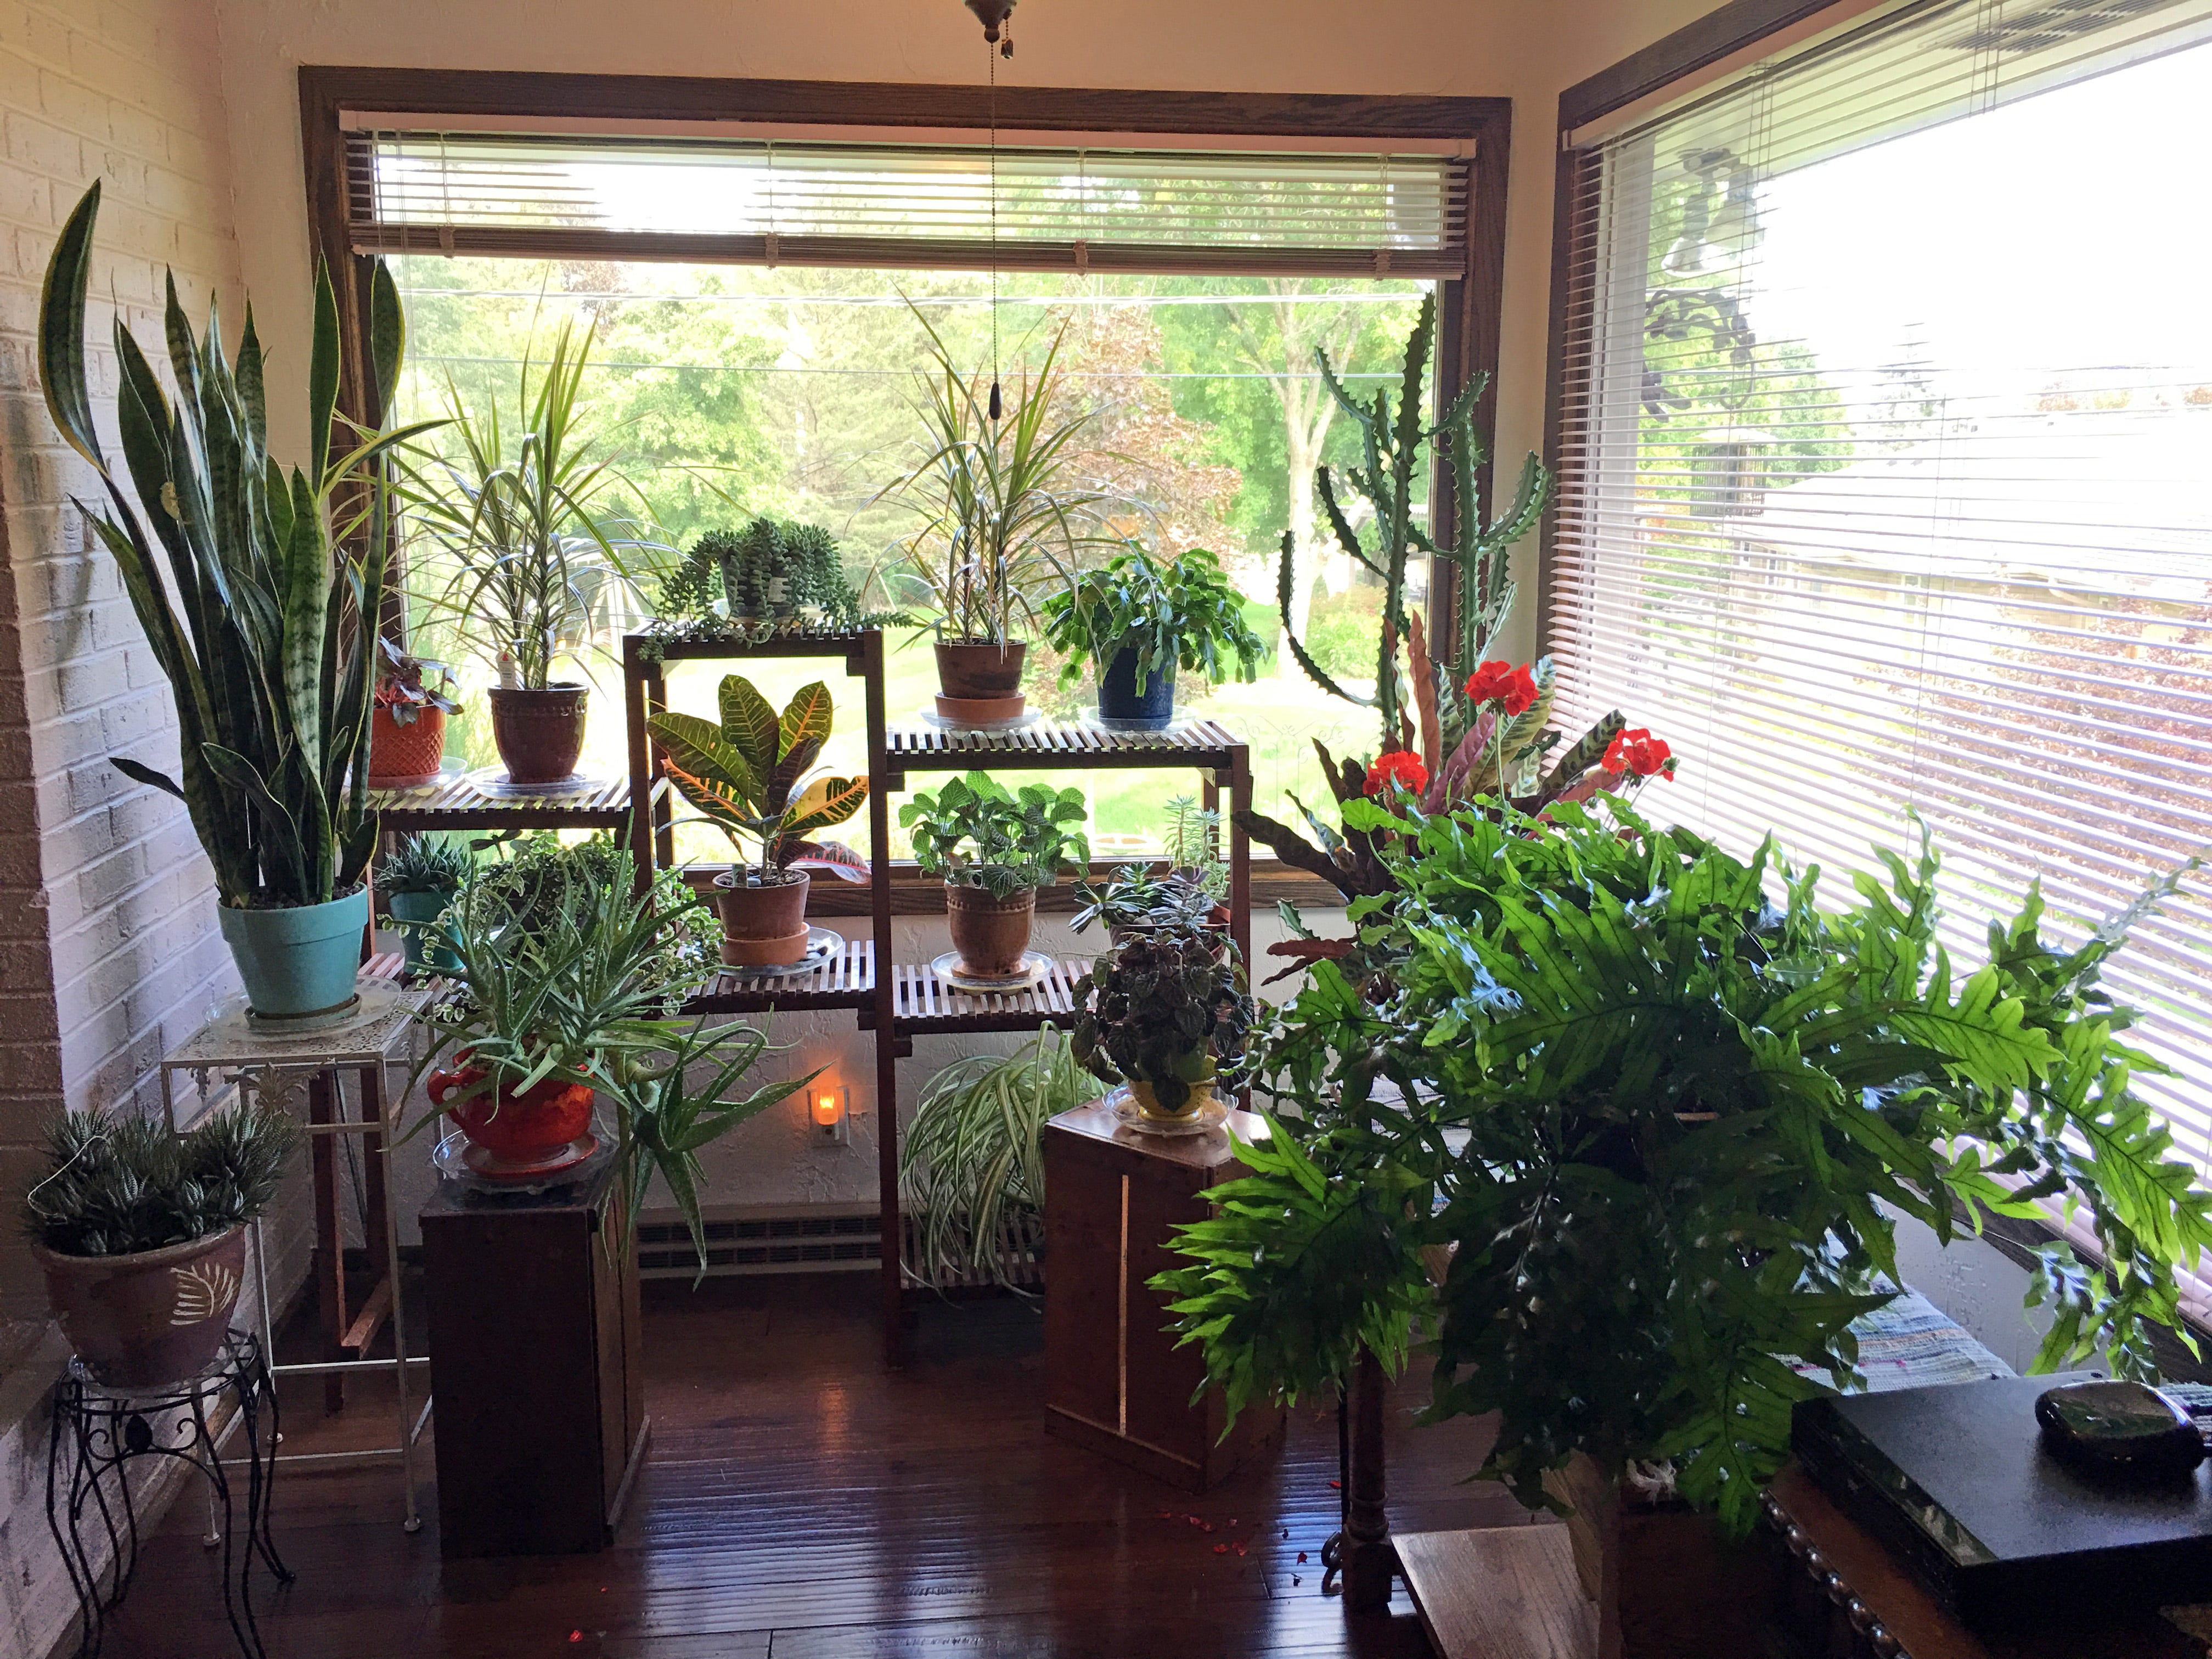 In addition to a wide variety of native plants in her garden beds, Ann Sheahan has many indoor potted plants that she puts outdoors for the summer. She recently brought them into her three-season room for the winter.